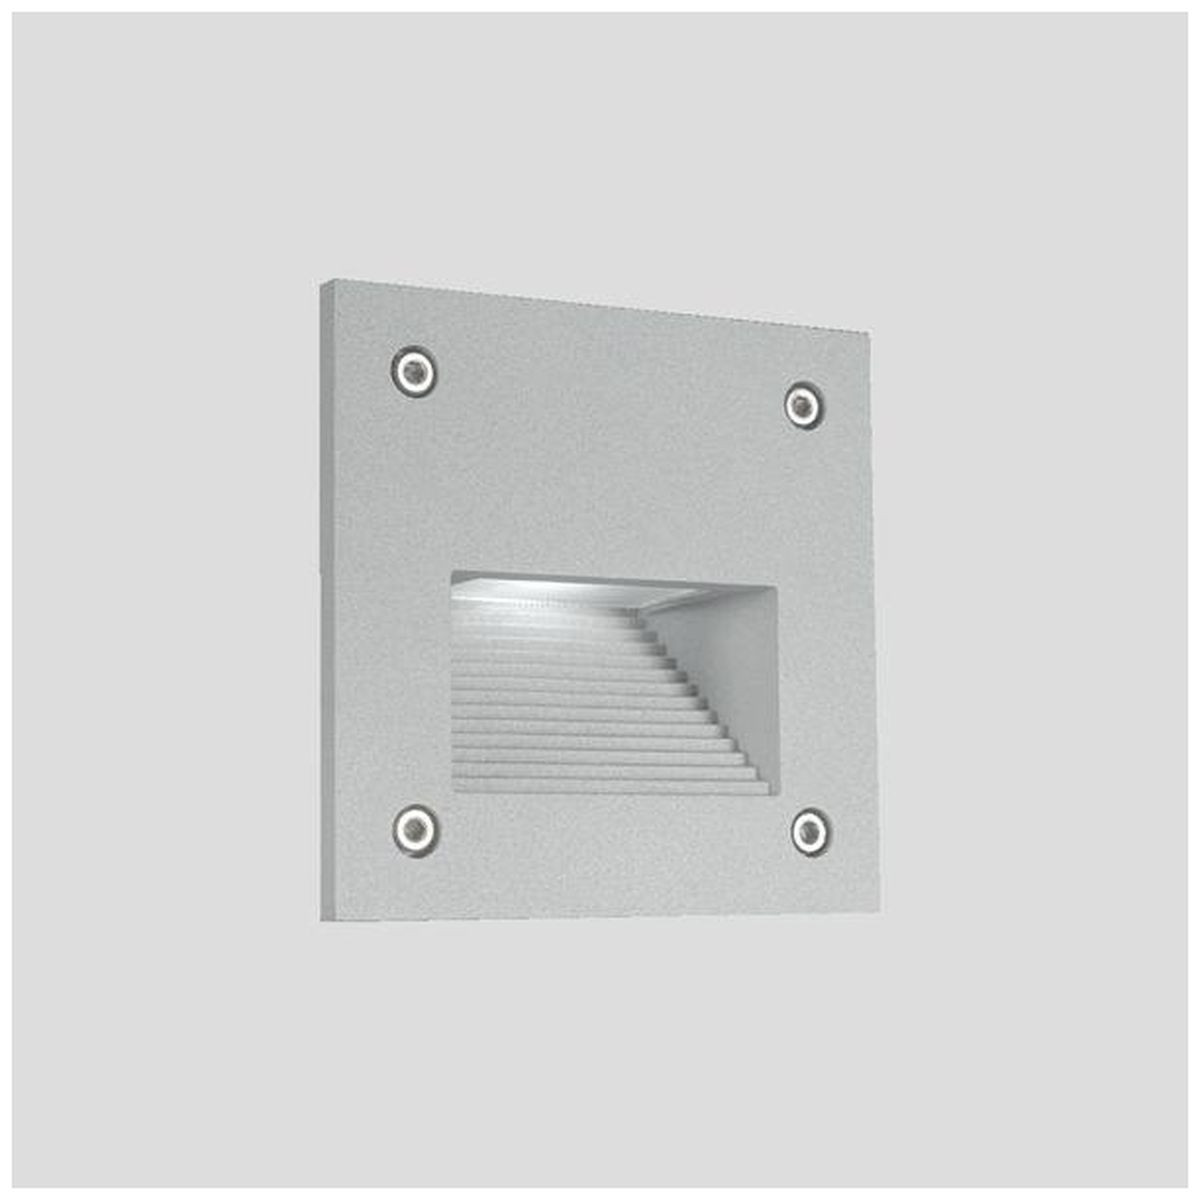 LED-muuri-/porrasvalaisin LedStore In-Wall Out, 3W, IP55